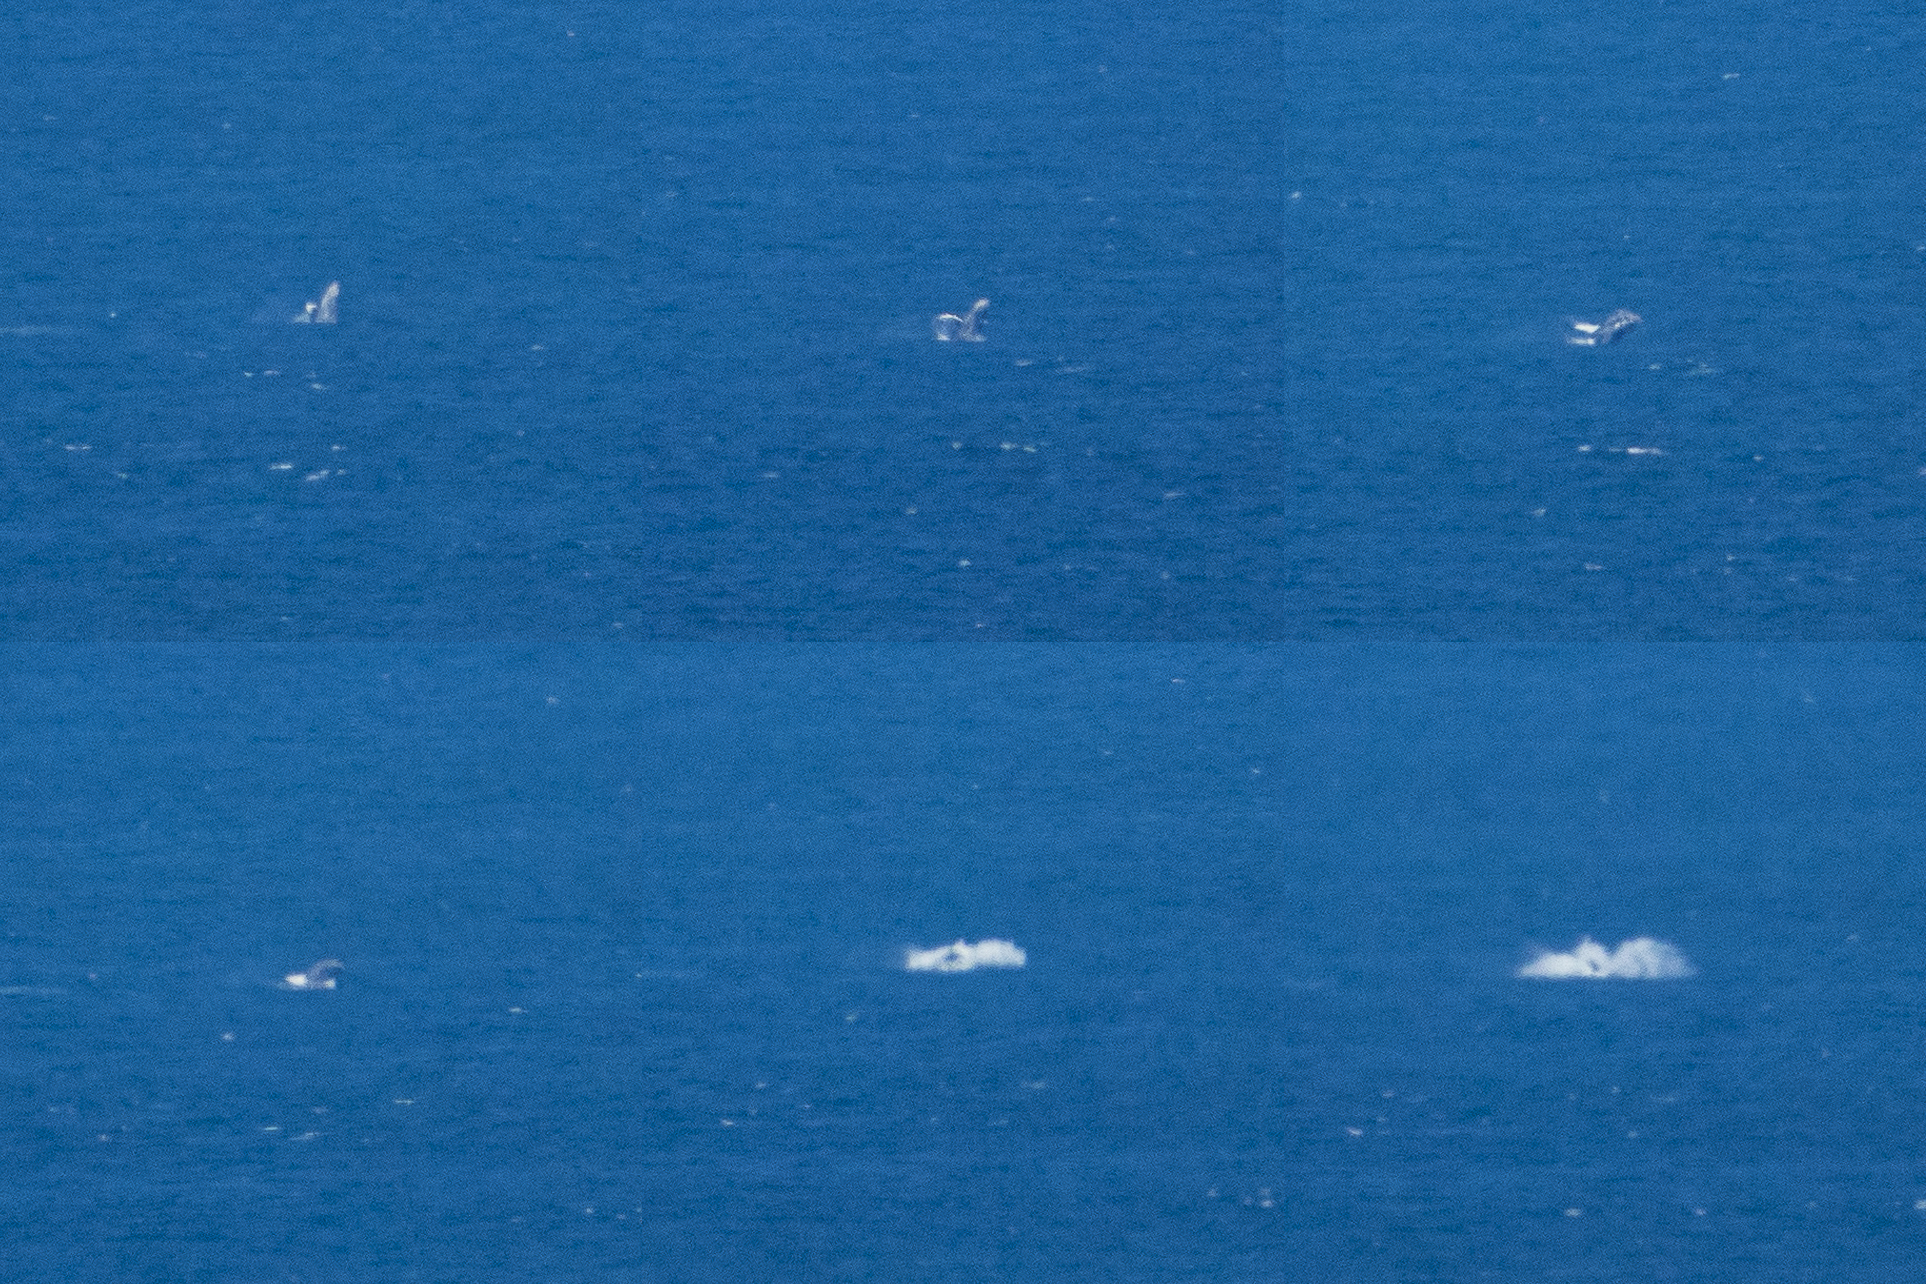 Humpback whale breach sequence. Small and far away, but still pretty cool!